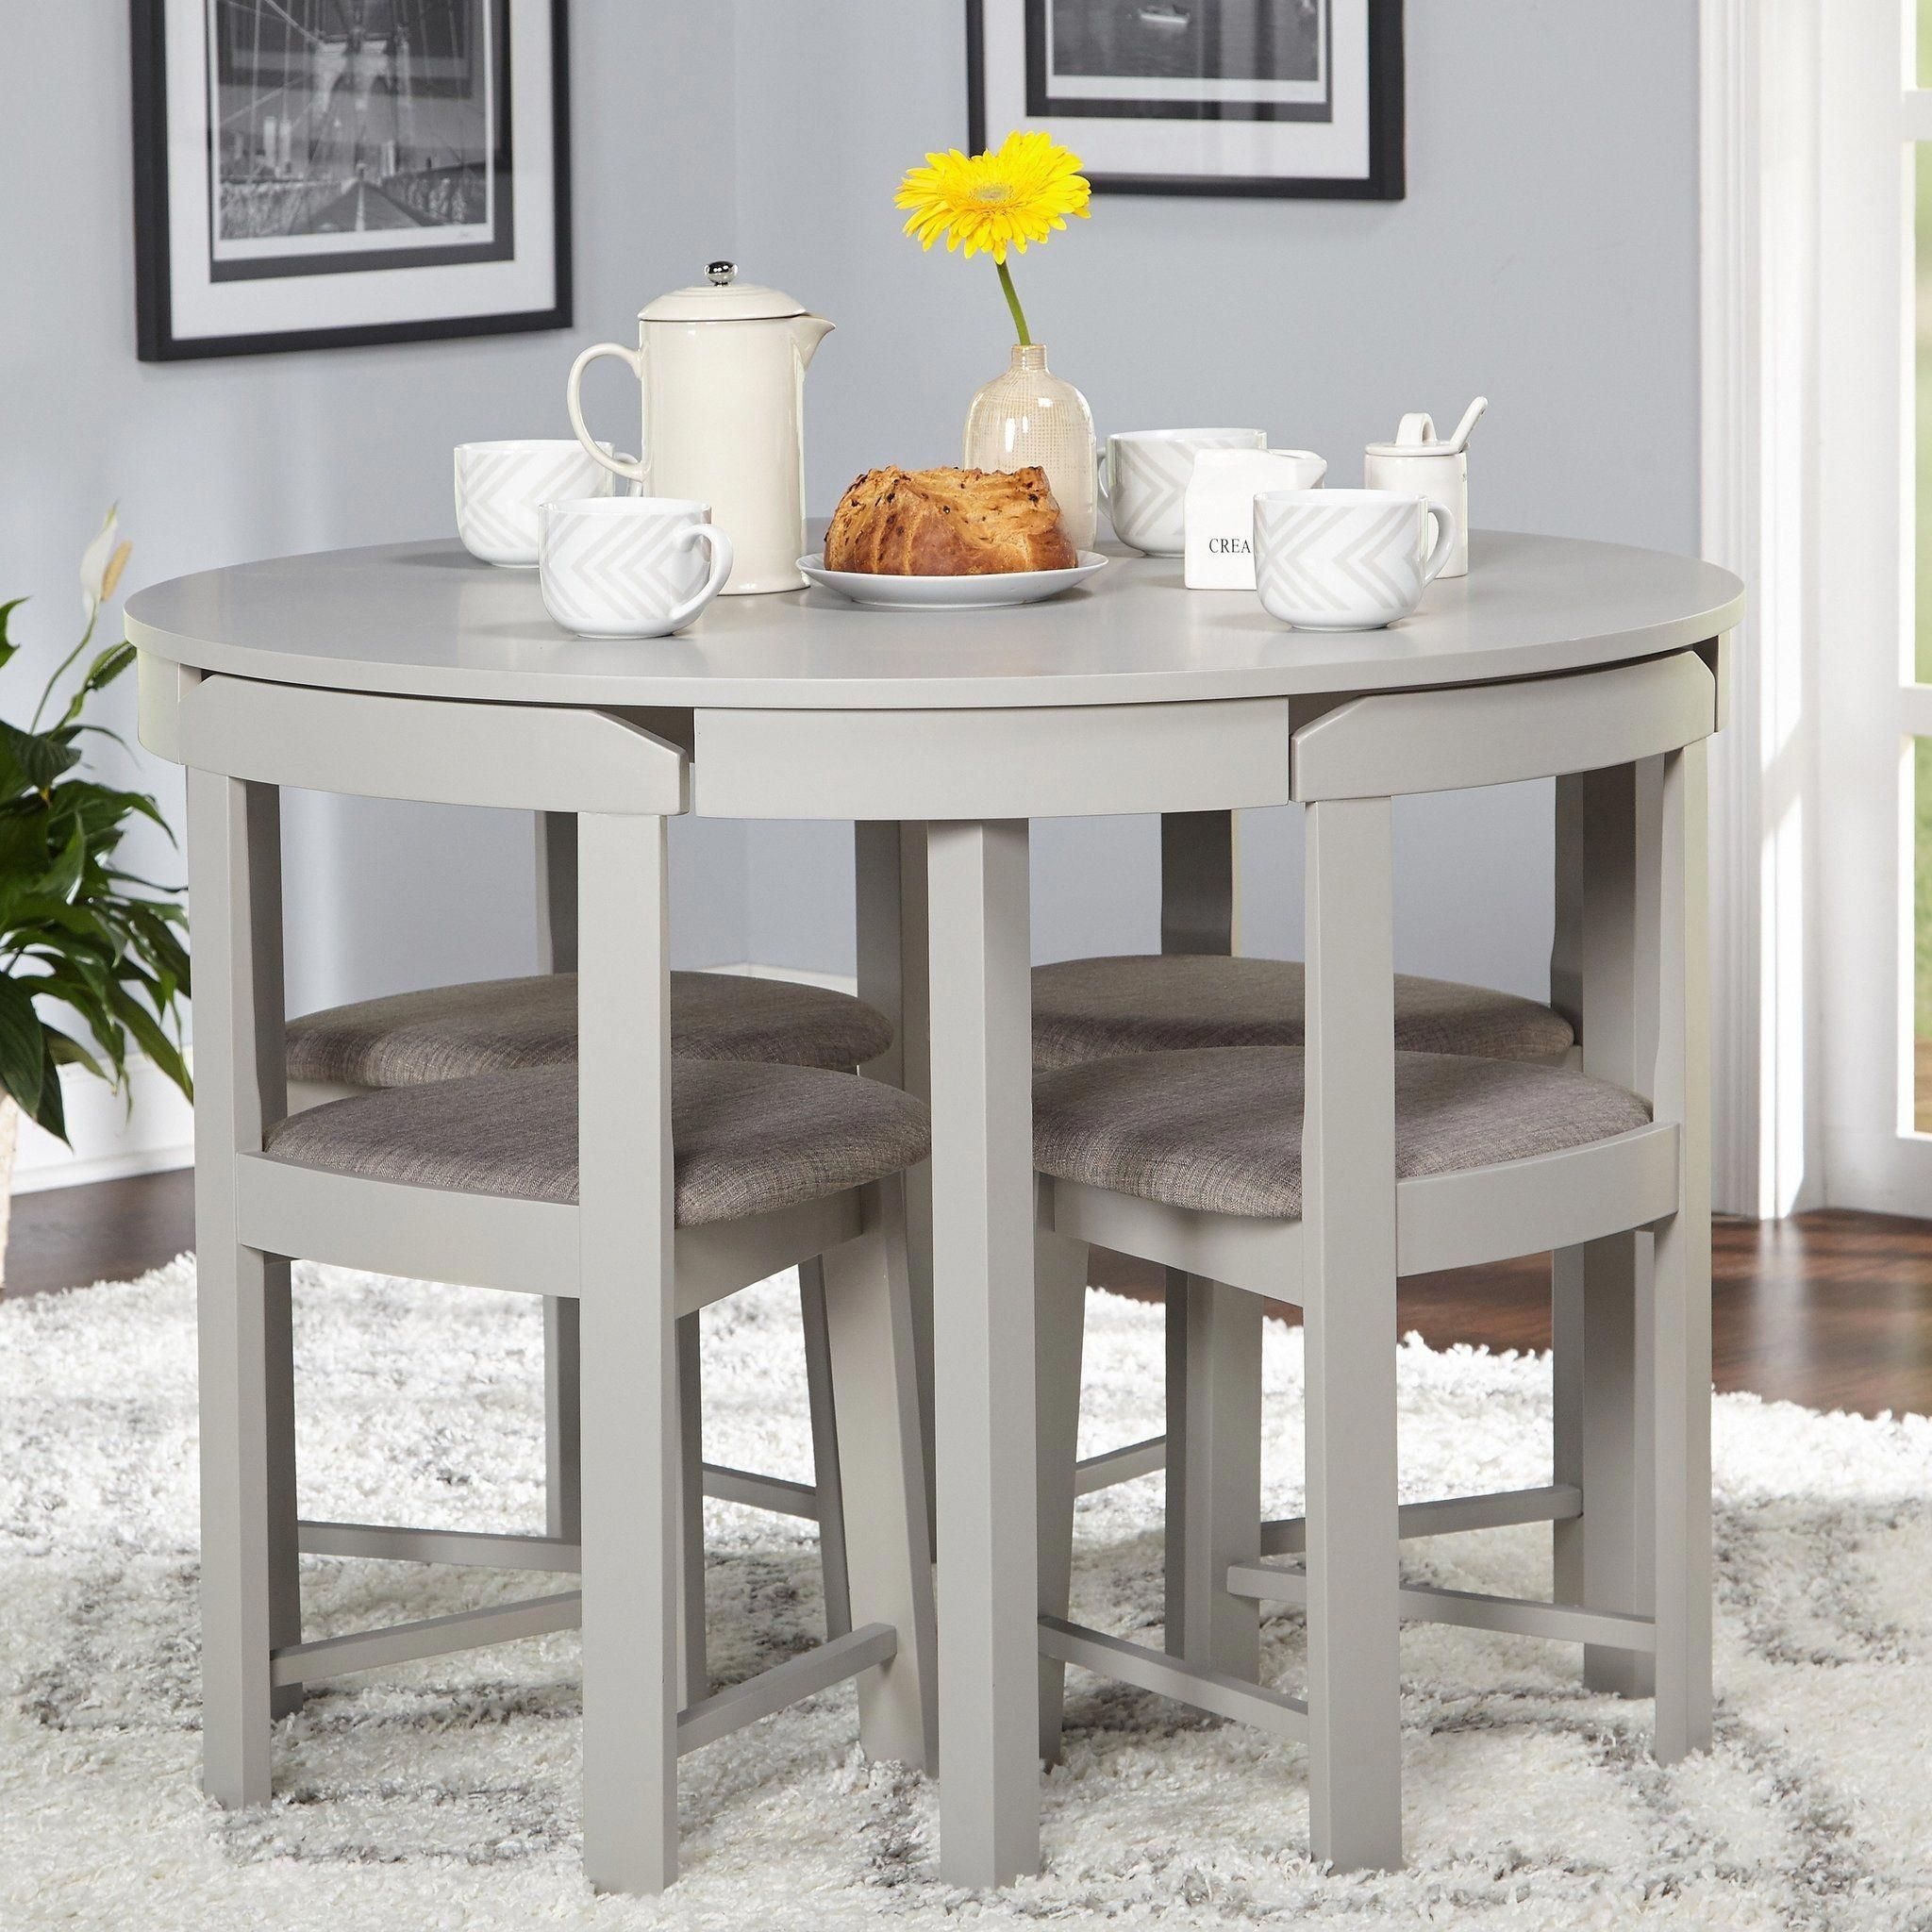 five piece compact round dining set kitchentable kitchen table in rh pinterest com